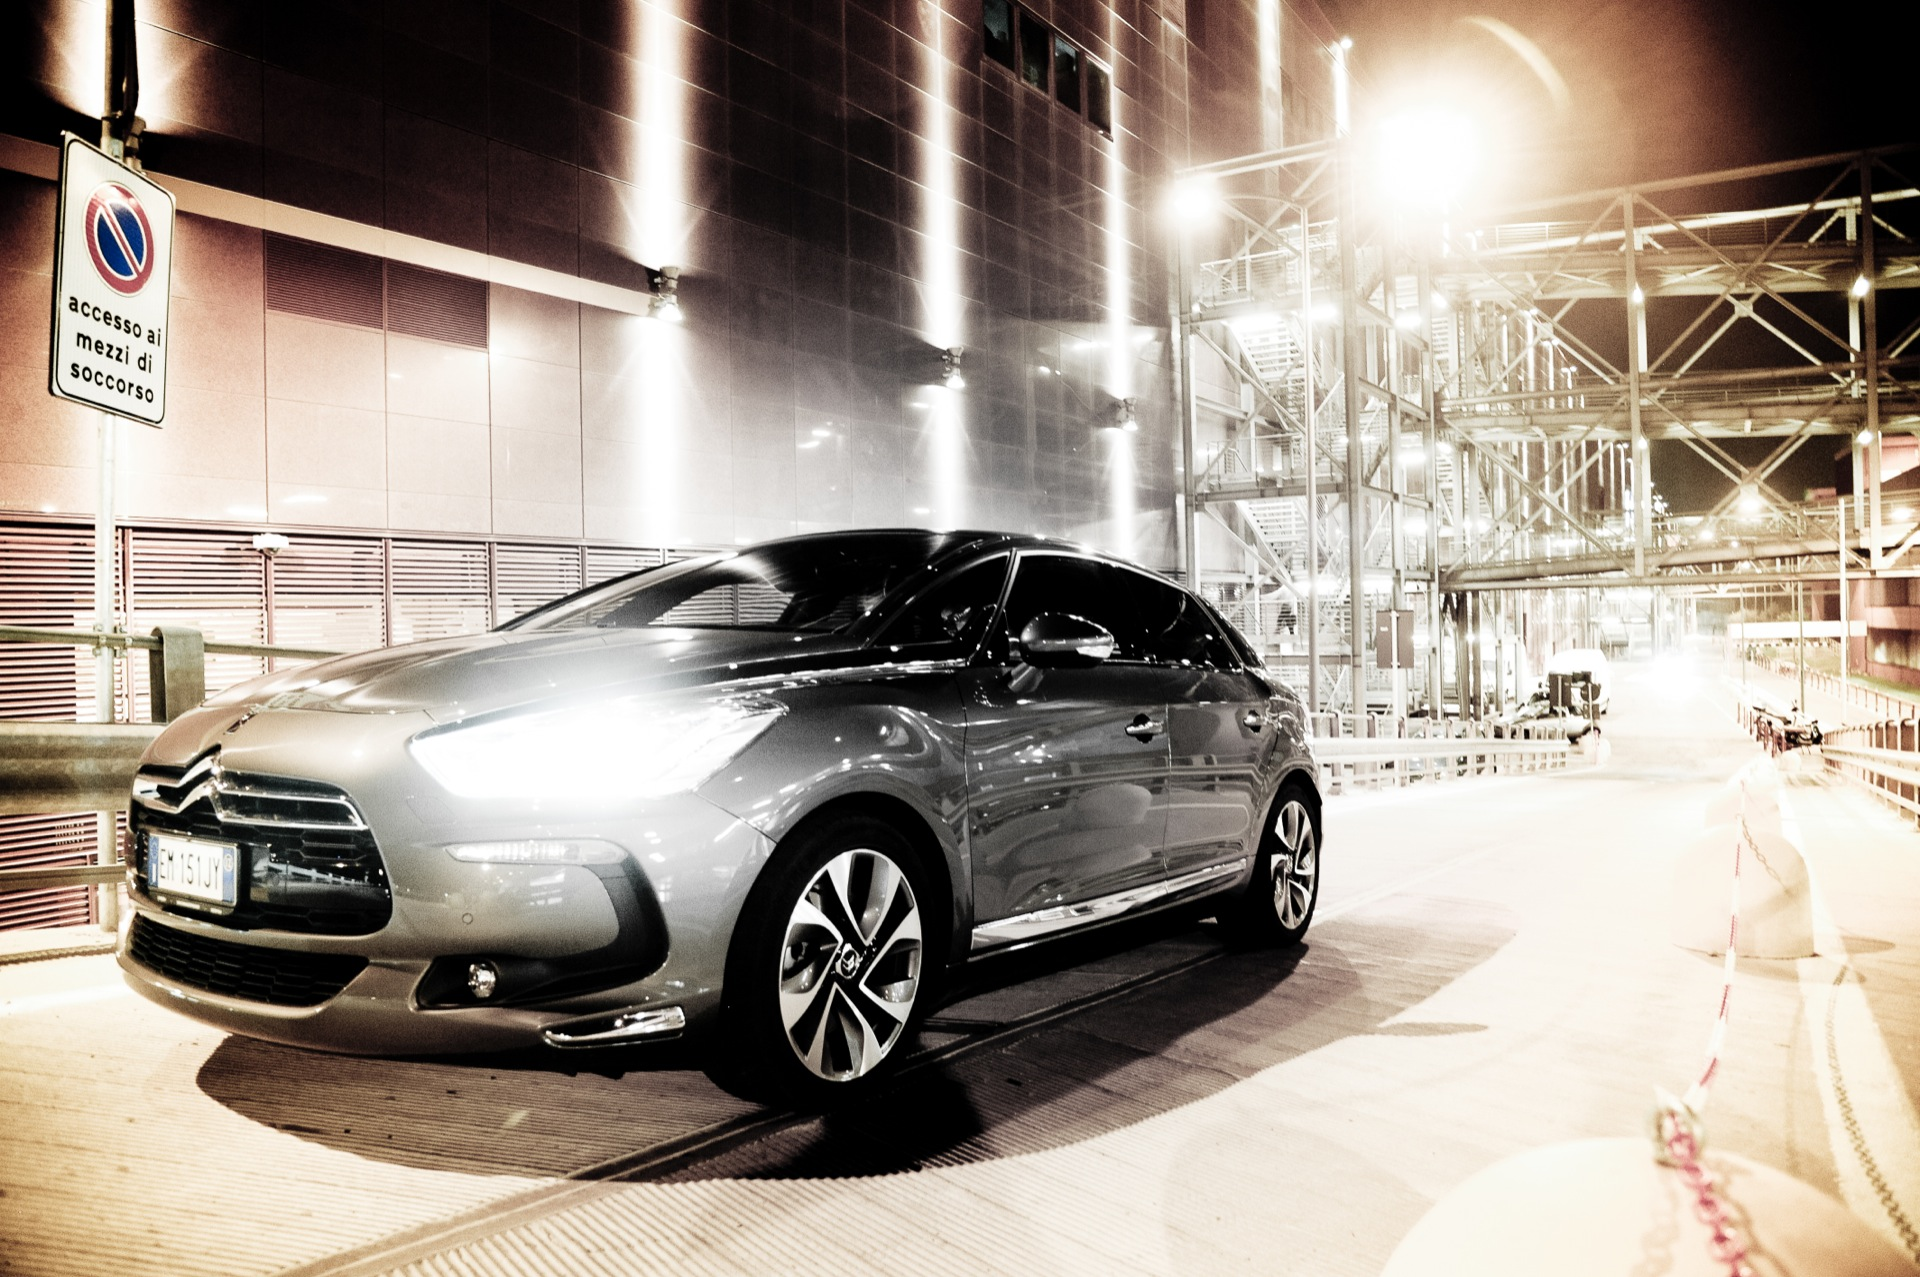 CITROEN DS5 @ mrlukkor